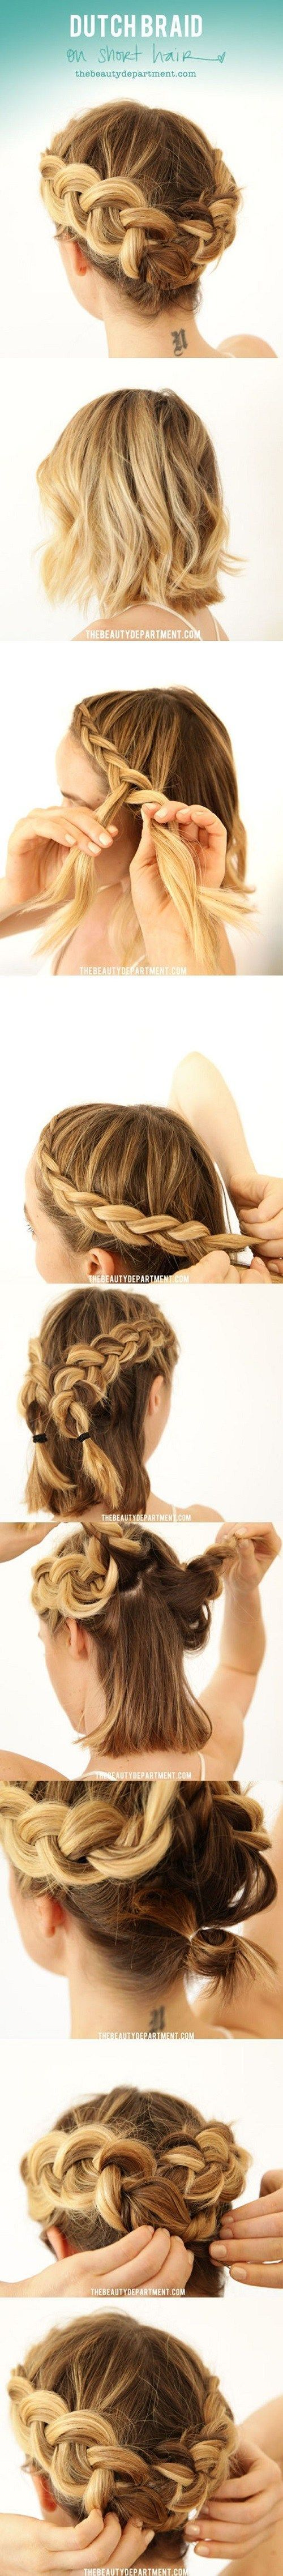 Best 25 Styling shoulder length hair ideas on Pinterest